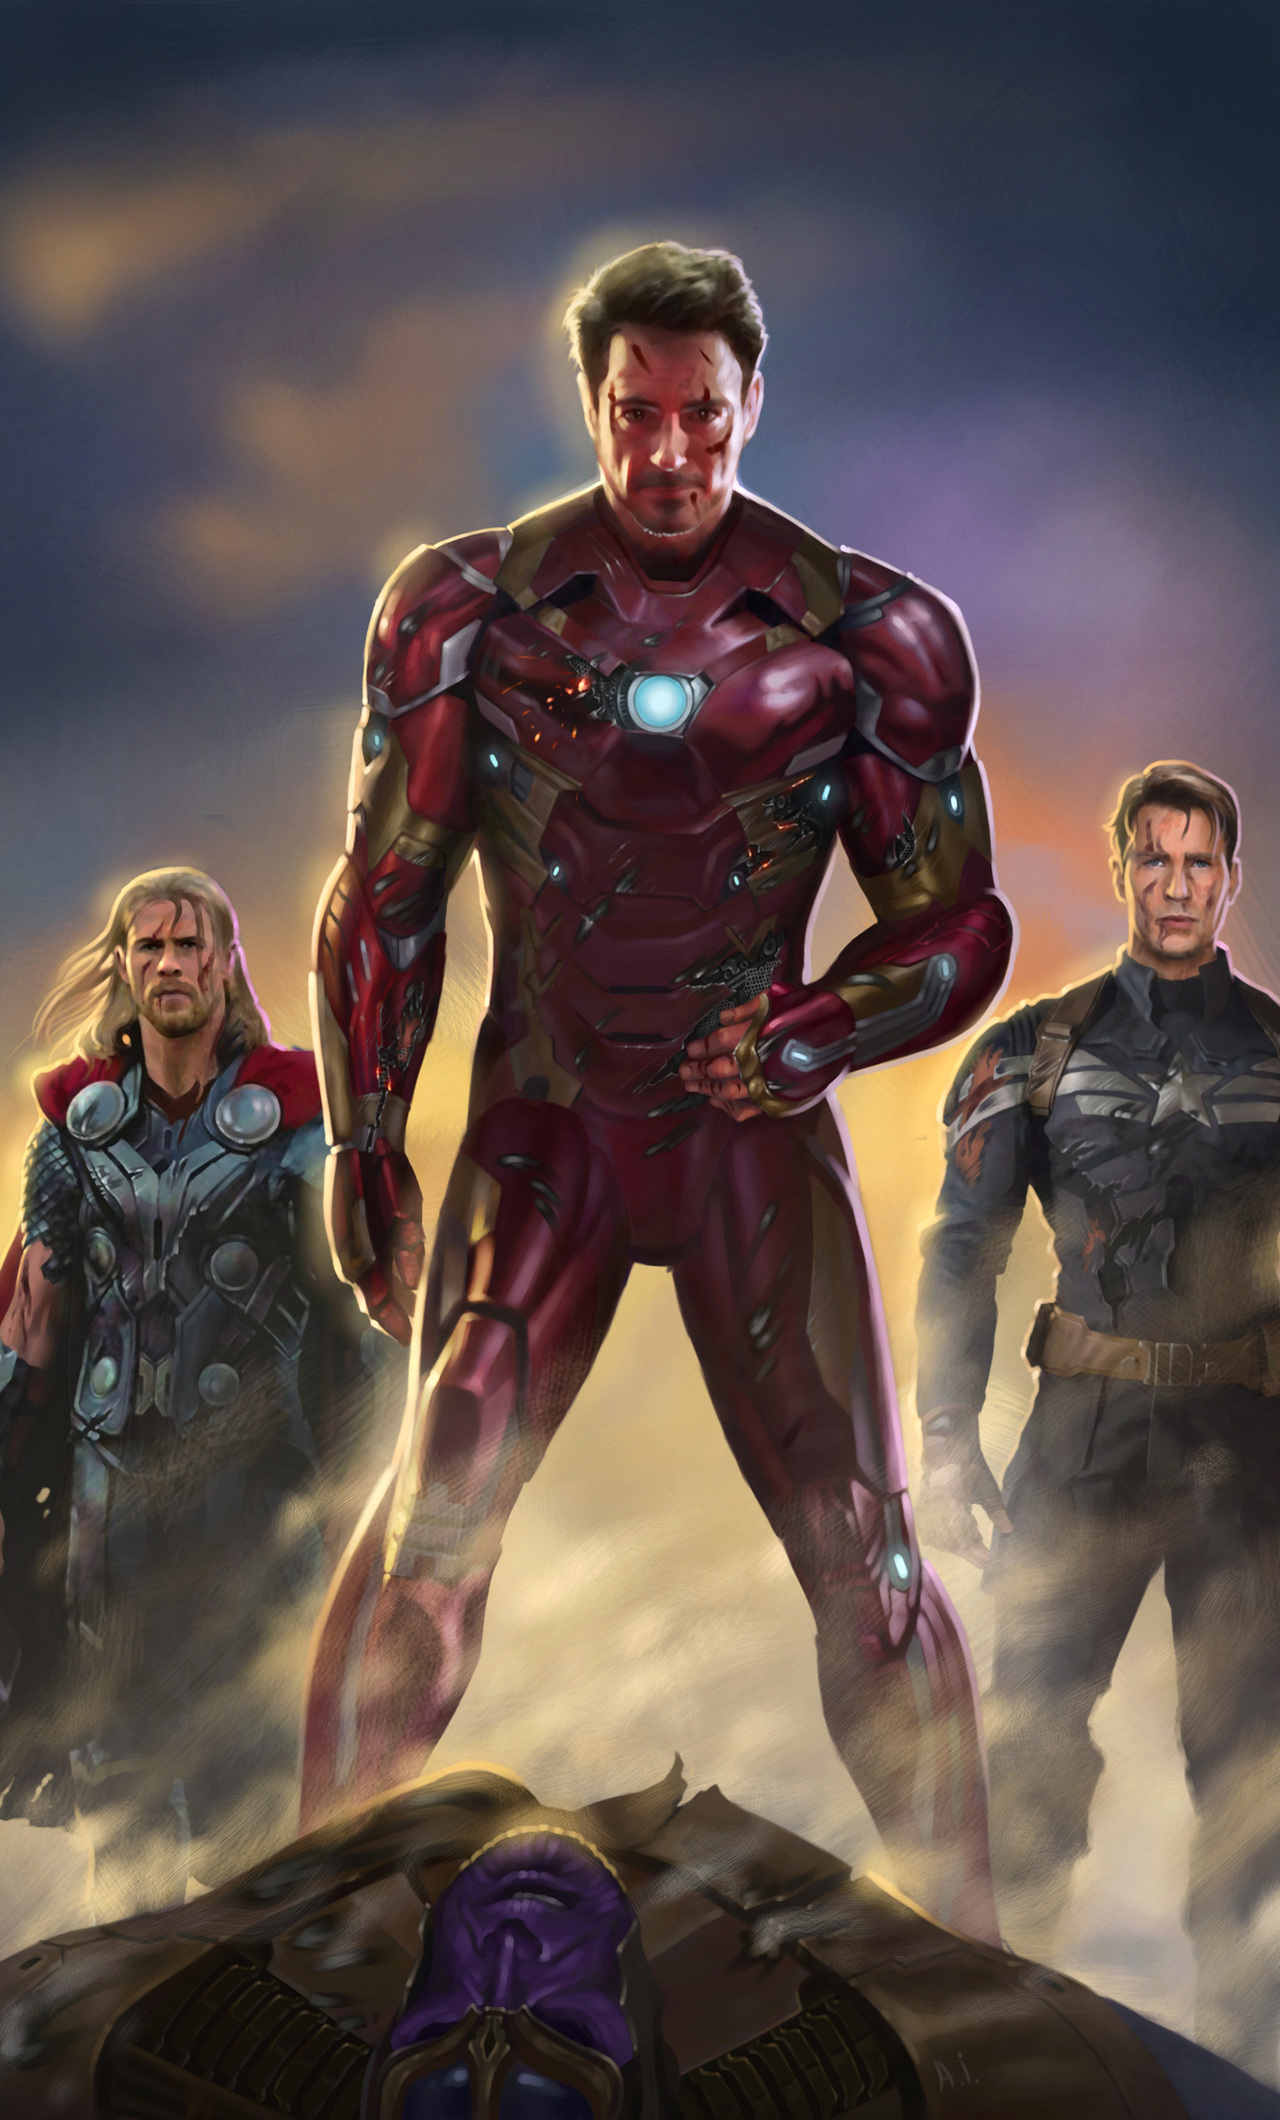 1280x2120 iron man captain america thor fan art iphone 6 - Fan wallpaper download ...